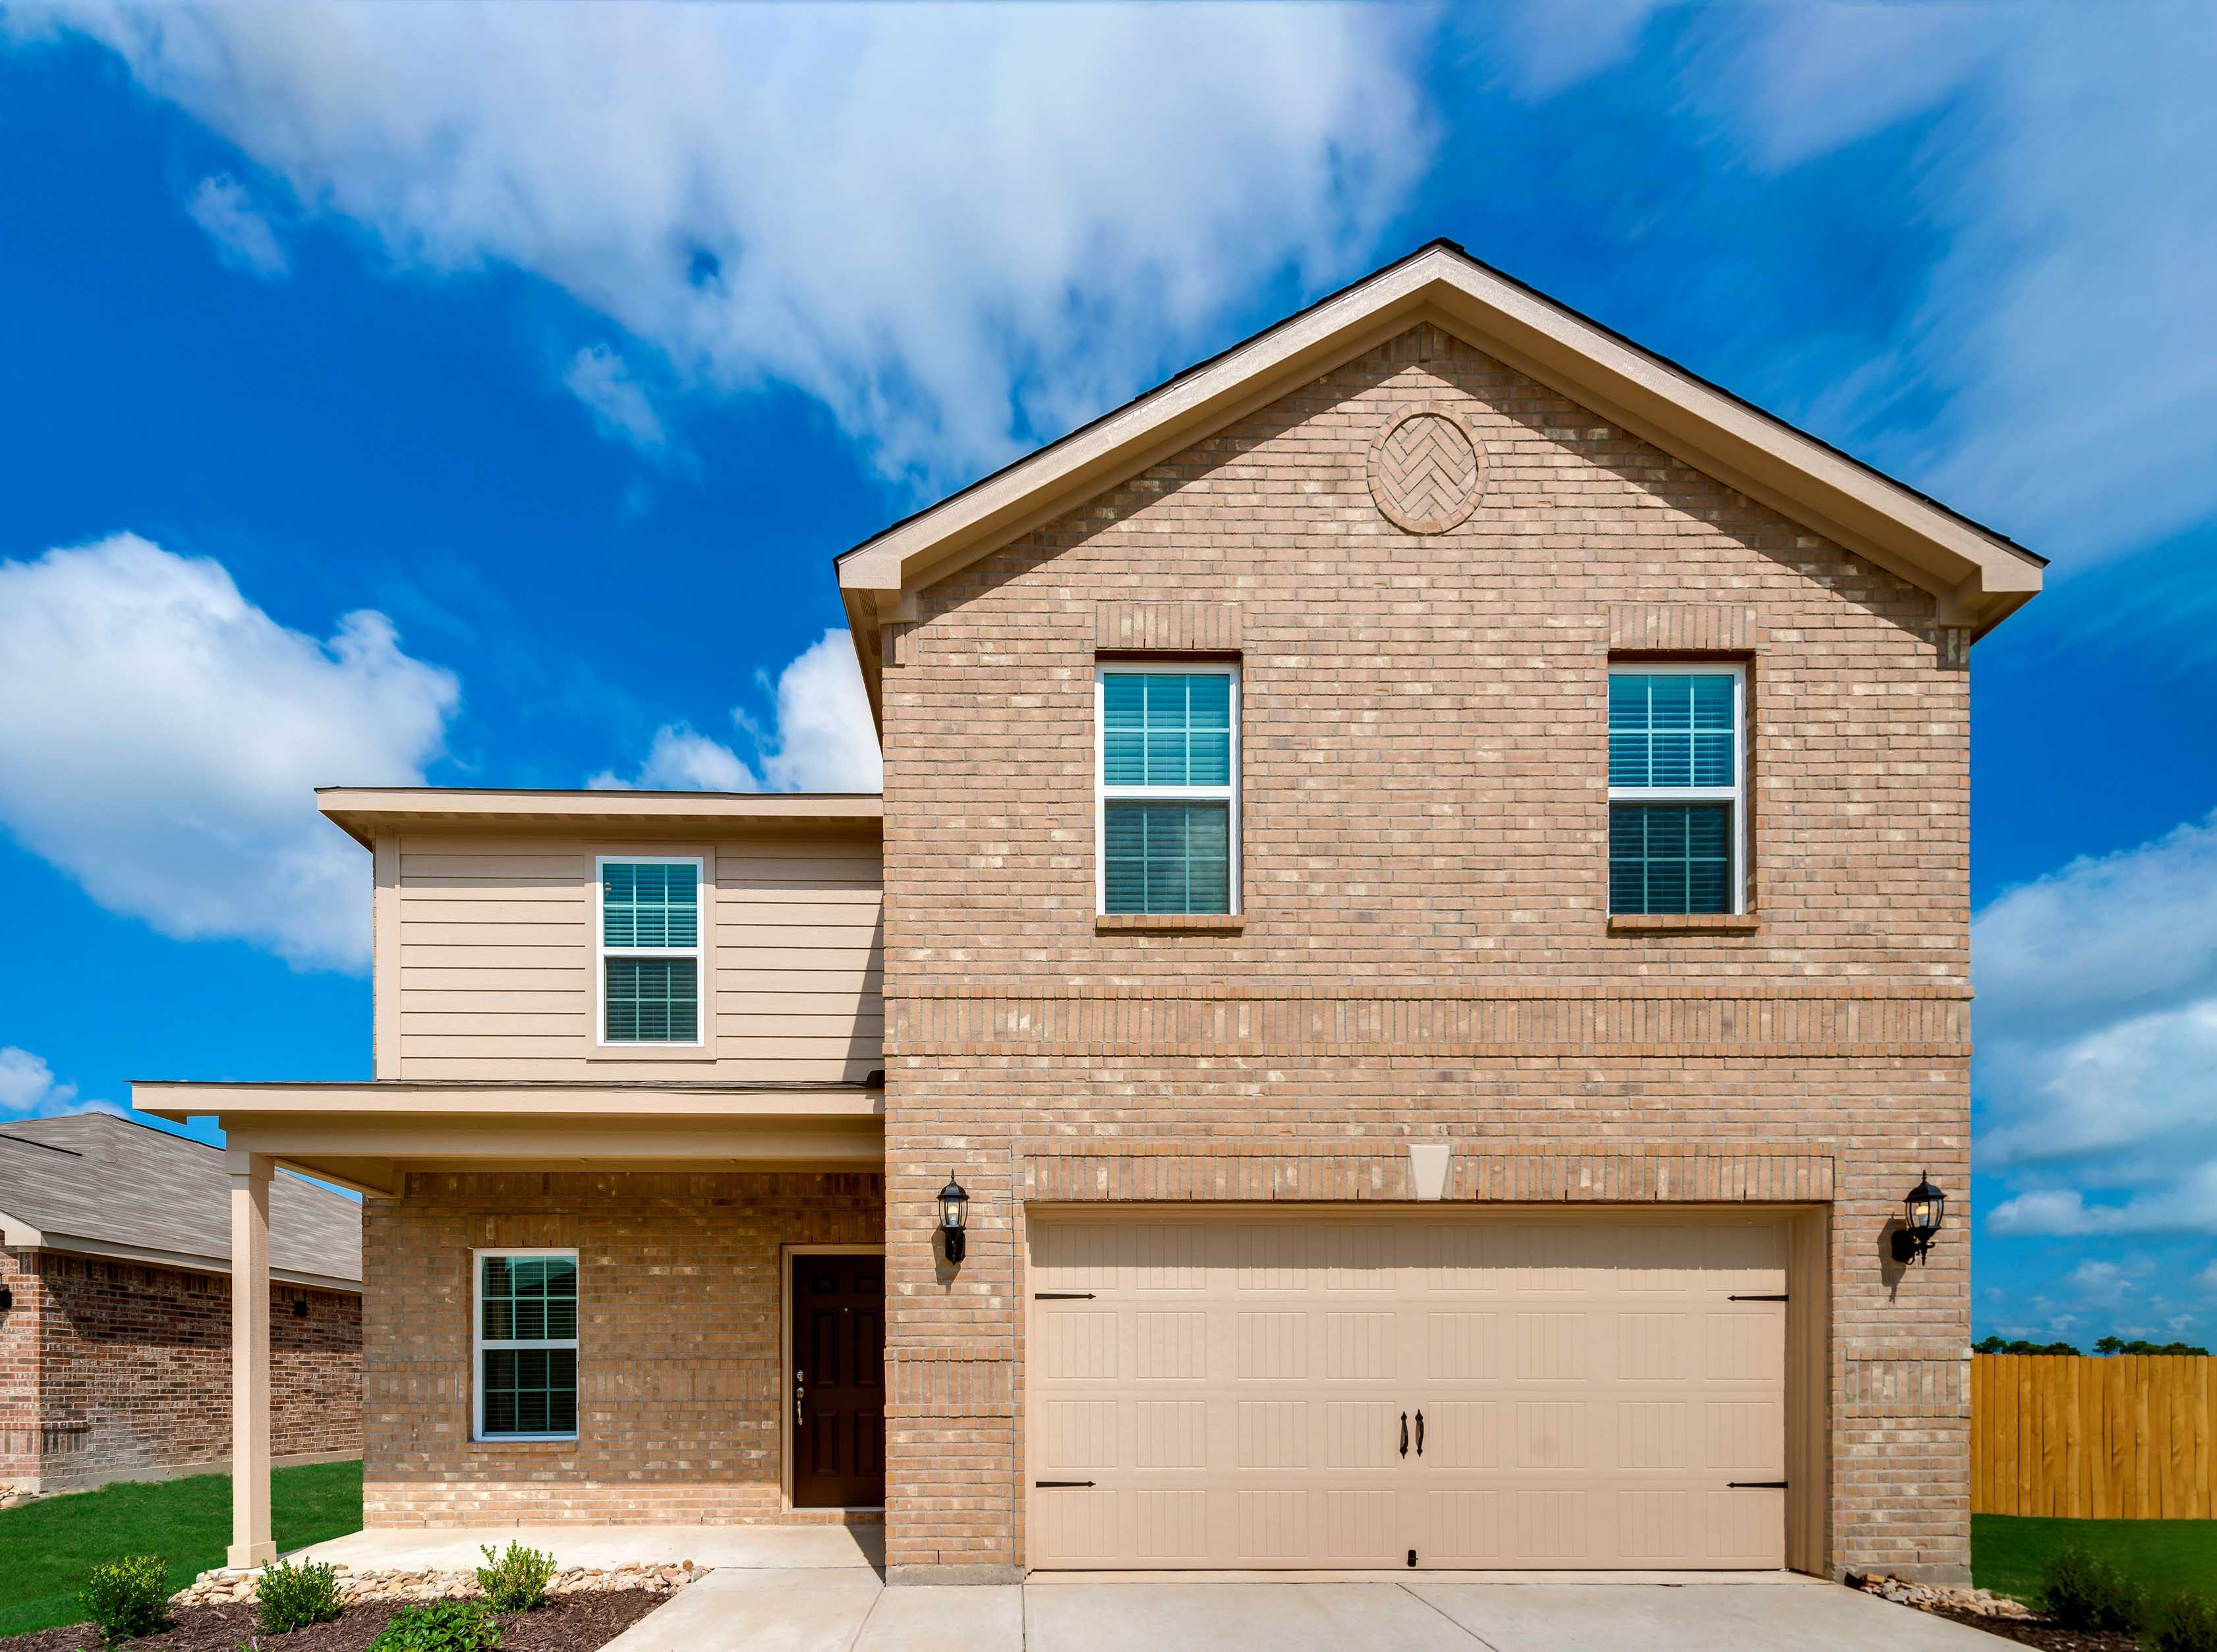 lgi homes new home plans in fort worth tx newhomesource rh newhomesource com